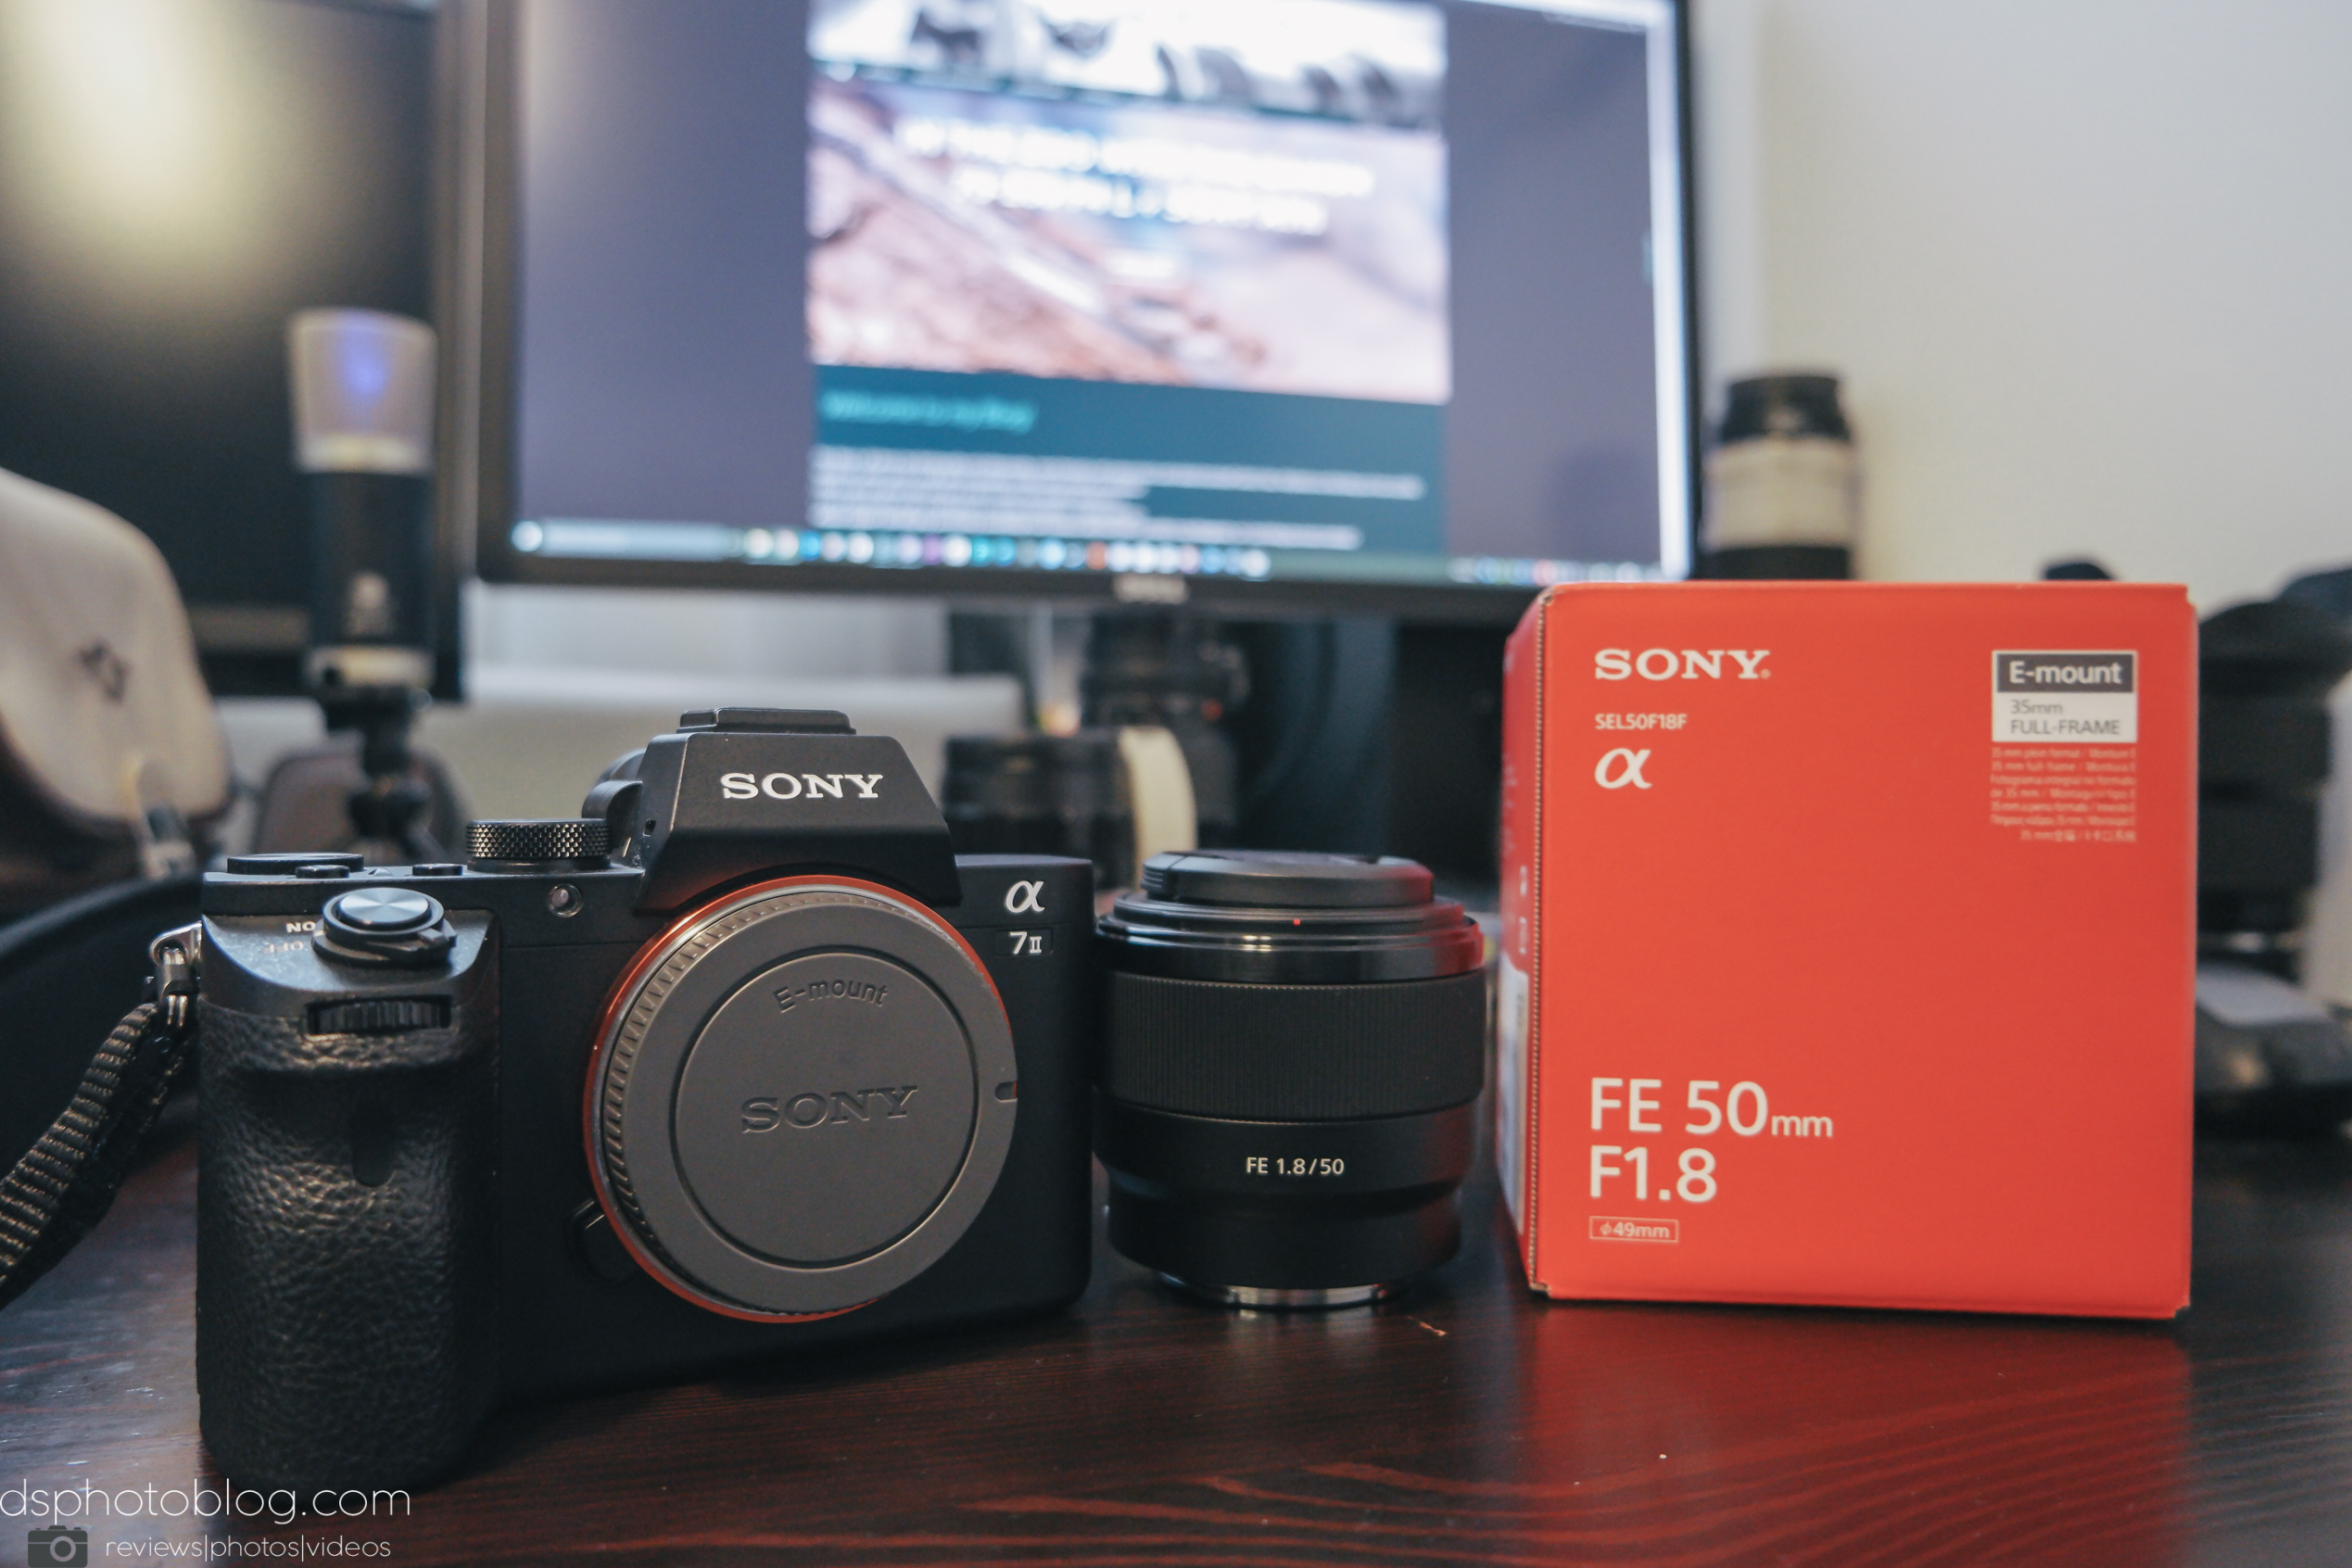 Sony FE50mm 1.8 REVIEW